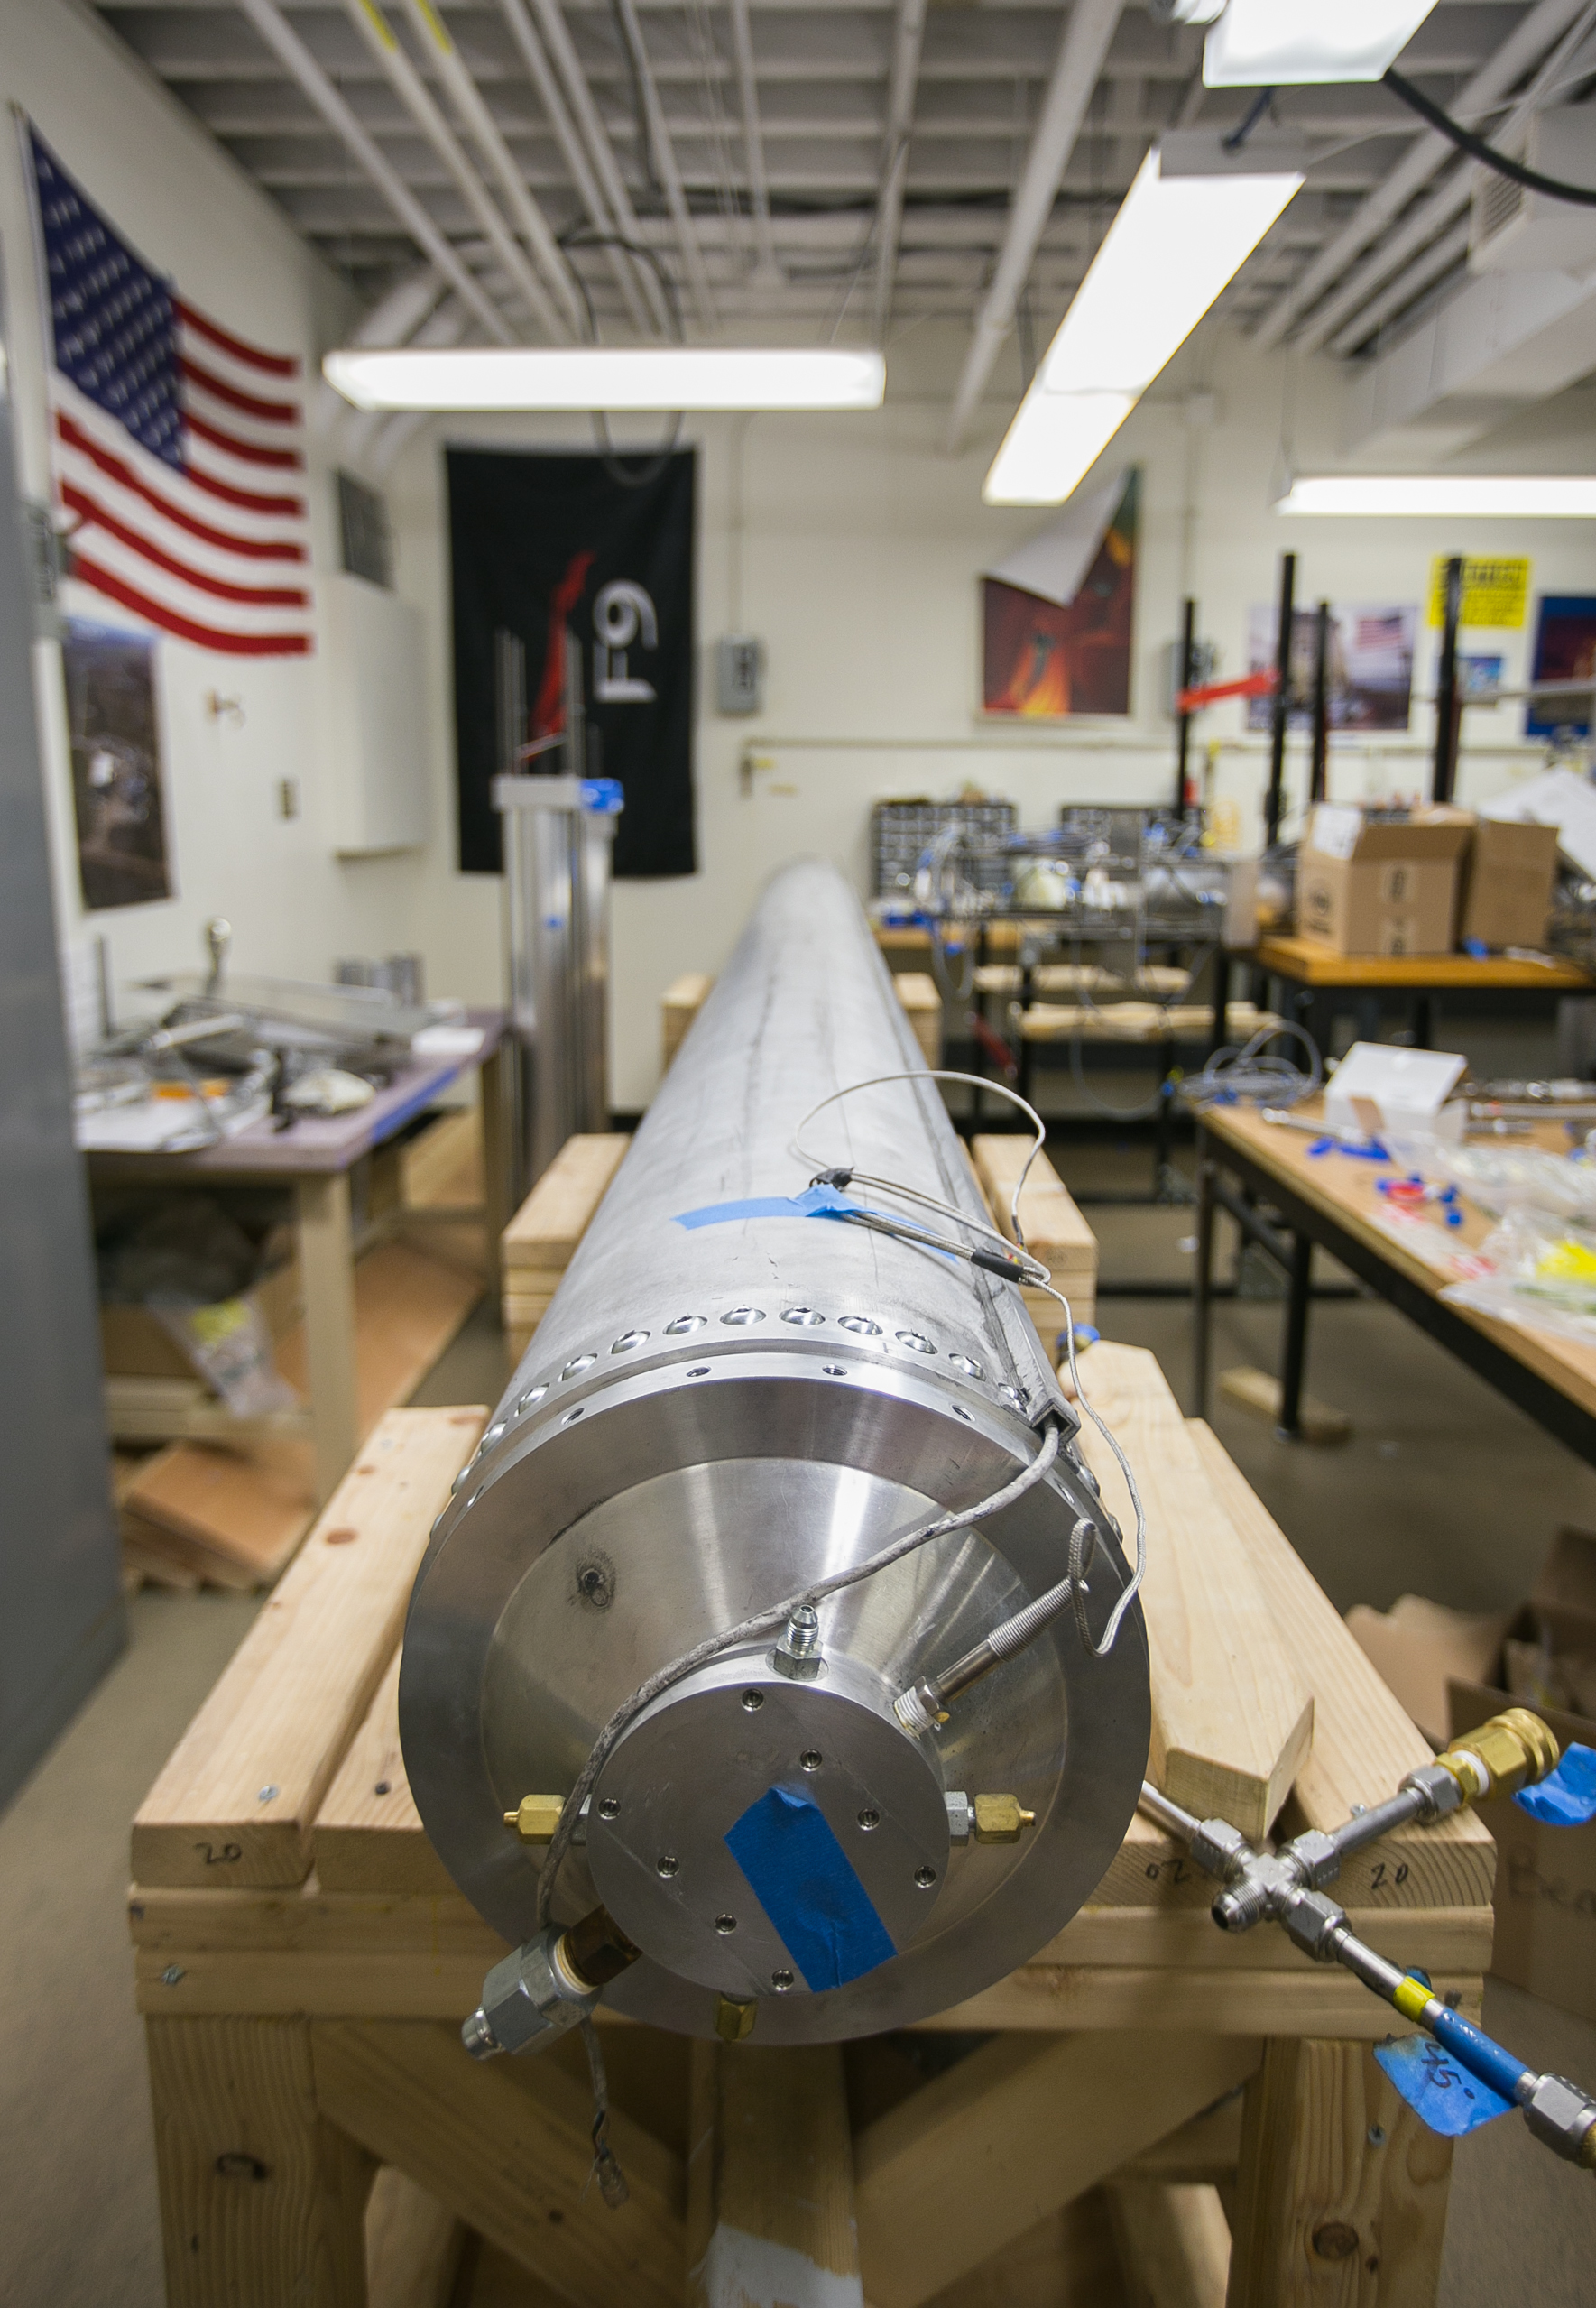 March 29, 2016 – The Starscraper rocket awaits it's 2017 launch in the lab of the Boston University Rocket Propulsion Group. The rocket is 30 feet long and weighs roughly 1200 pounds. It will require the assistance of two liquid bi-propellant Lotus engines to make it to space. The Boston University team is in a tight race with the University of Southern California to be the first student designed and constructed rocket to reach space – or about 62 miles above the earth's surface.   ©  Mike Schwarz